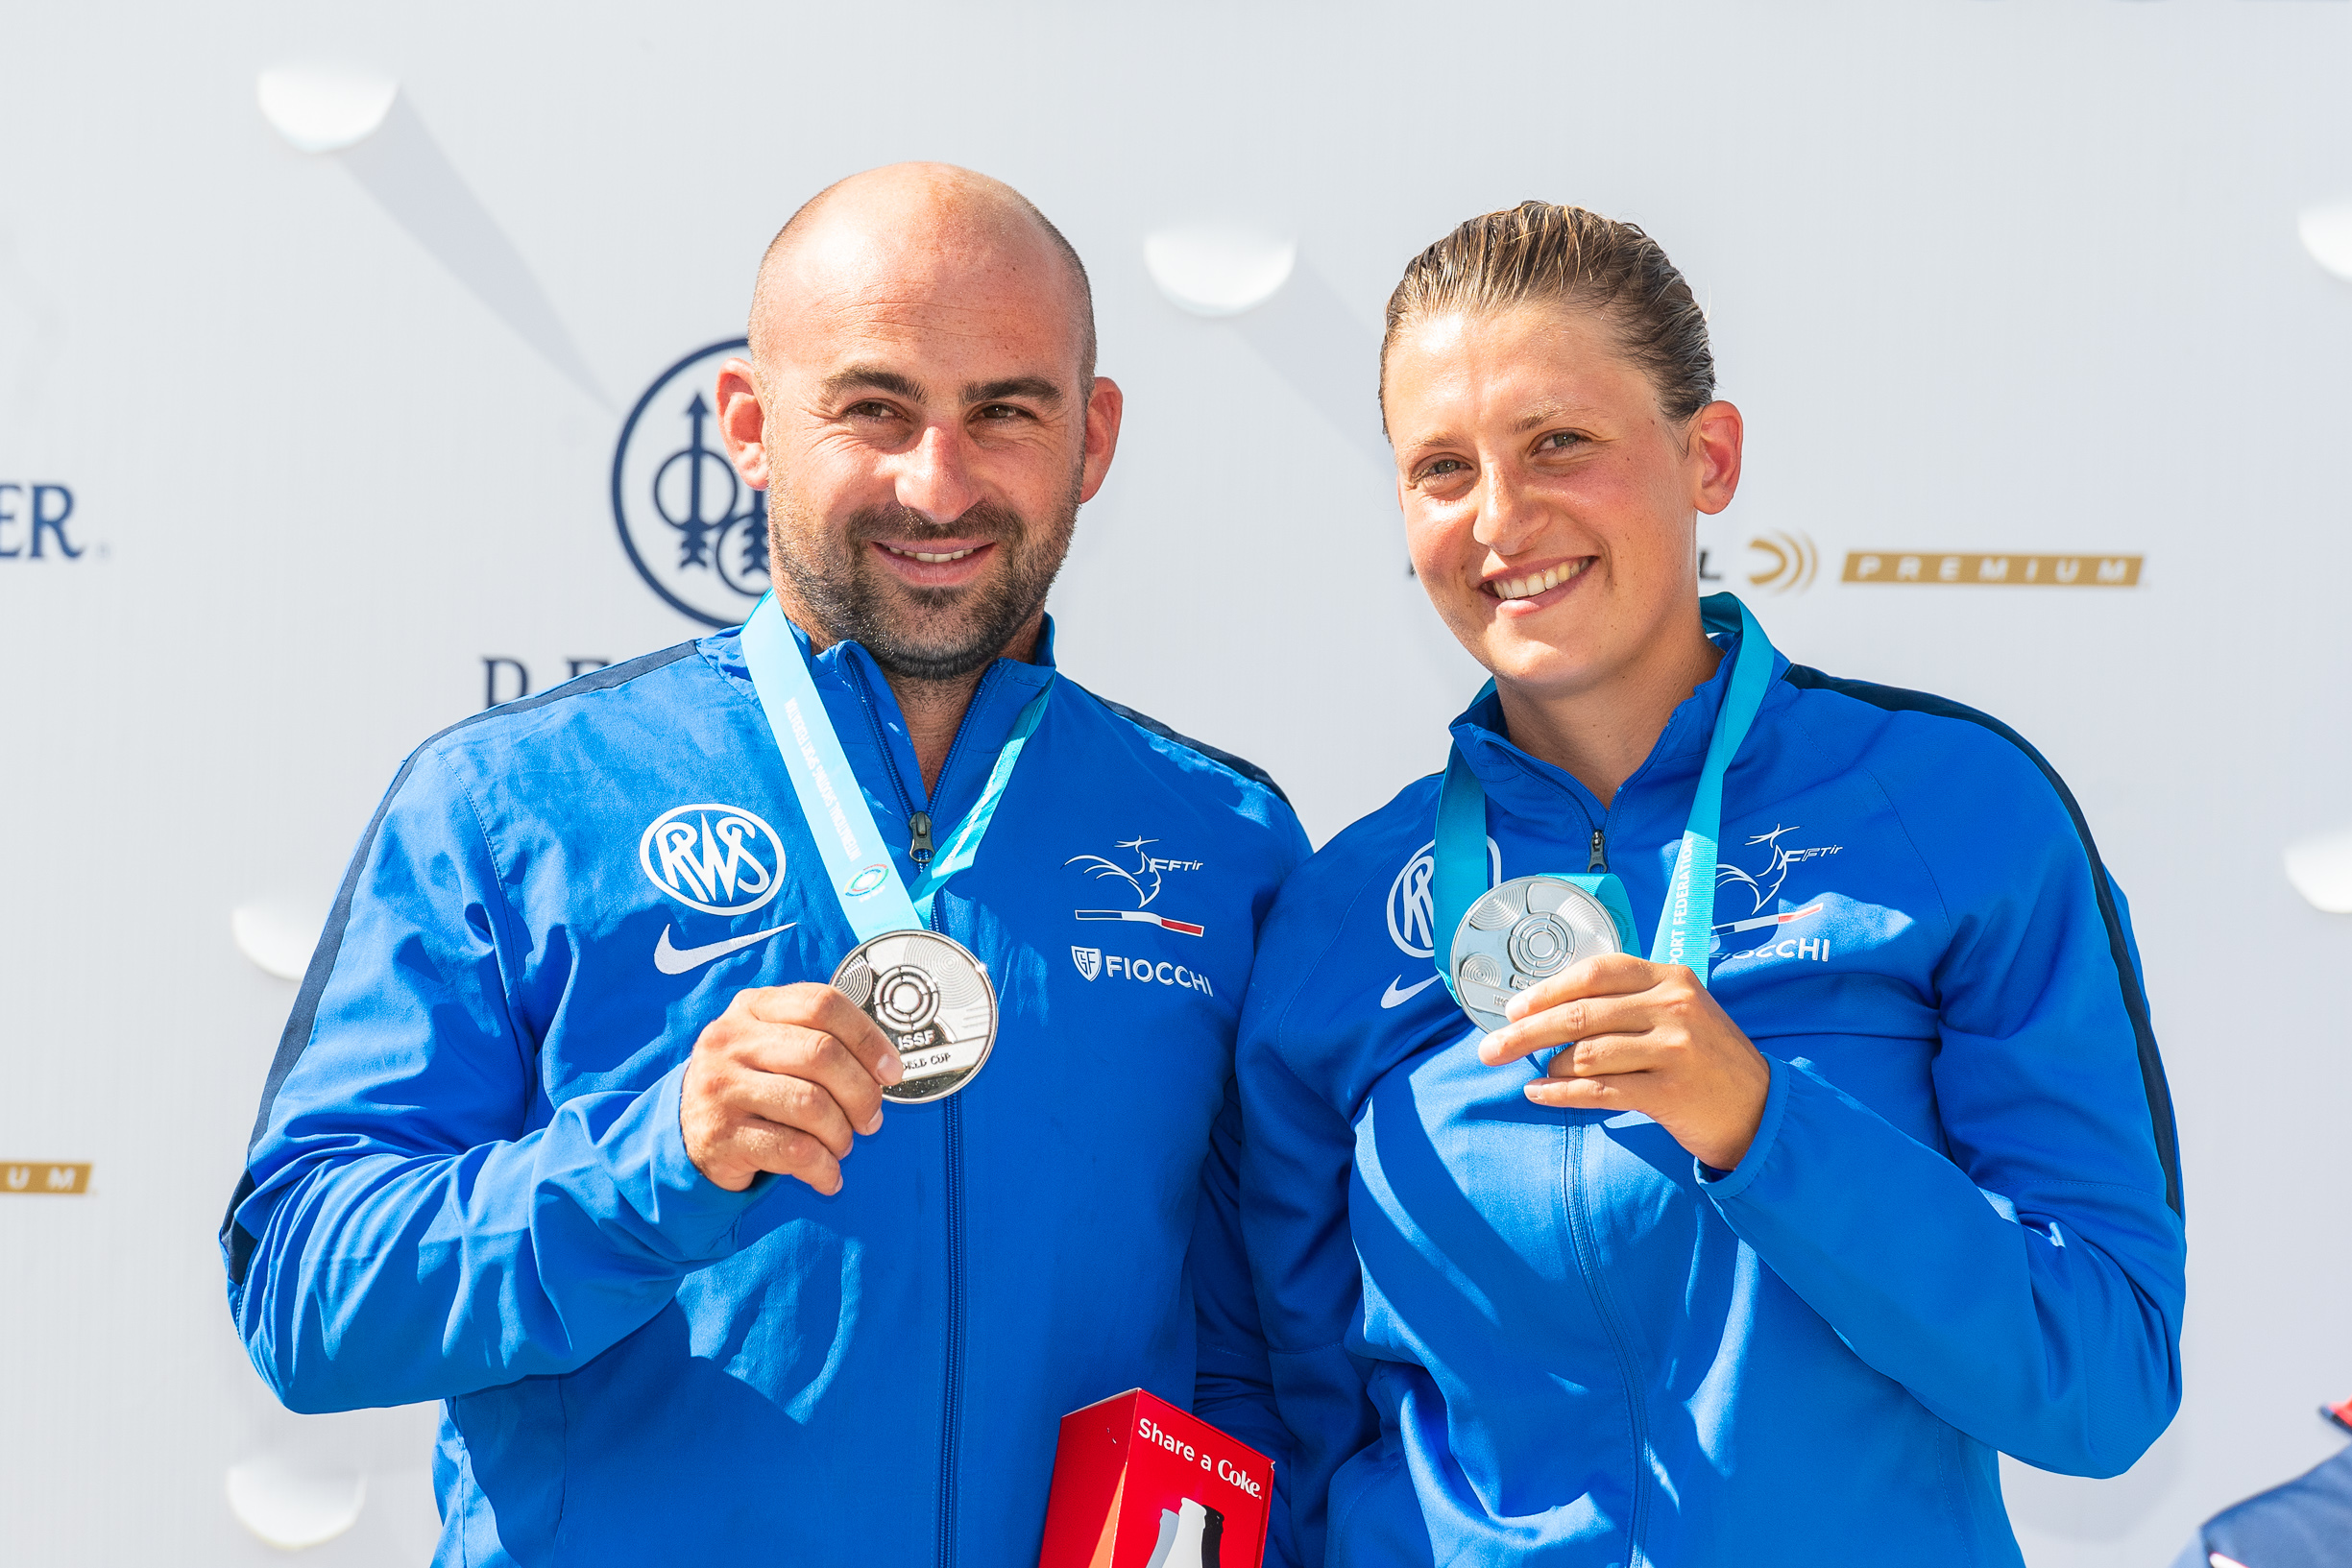 FIOCCHI SEALS THE 2018 ISSF WORLD CUP SERIES WITH THREE MORE MEDALS